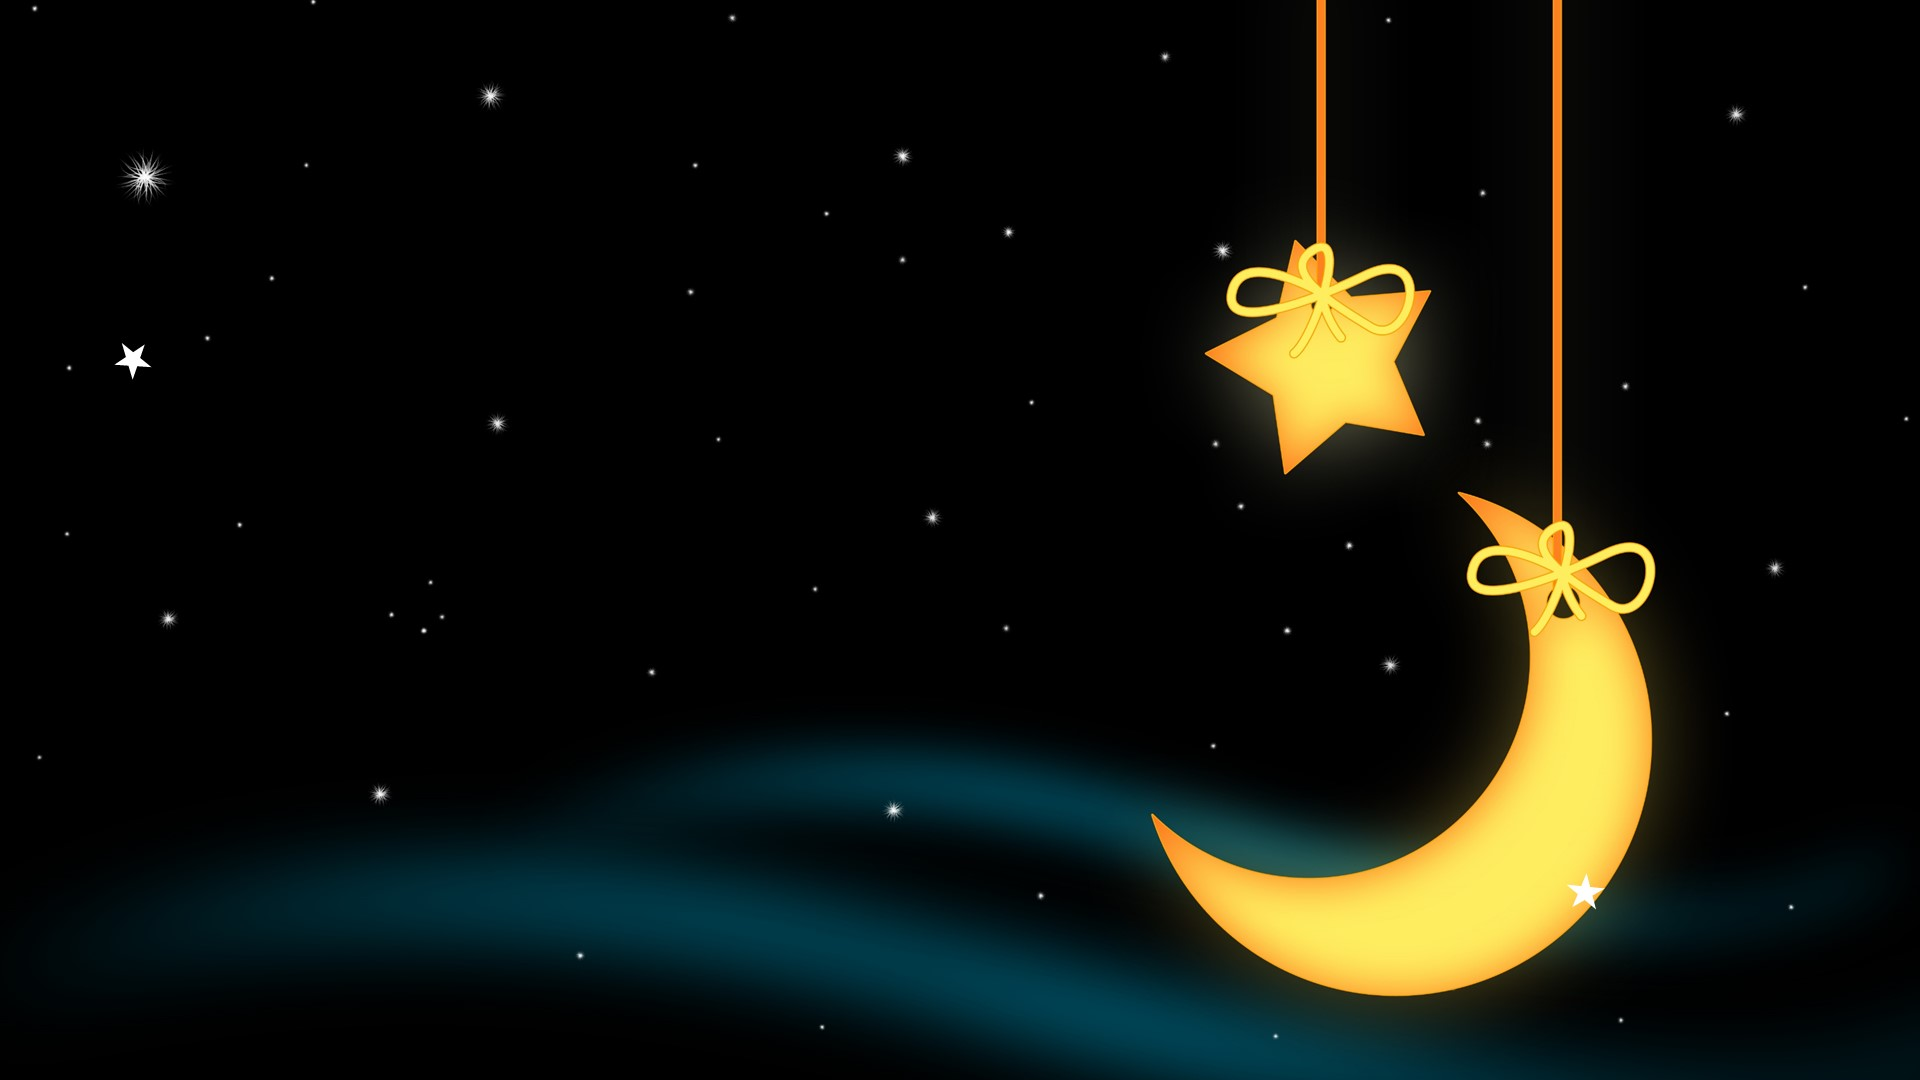 Lullaby Free Background stars and moon